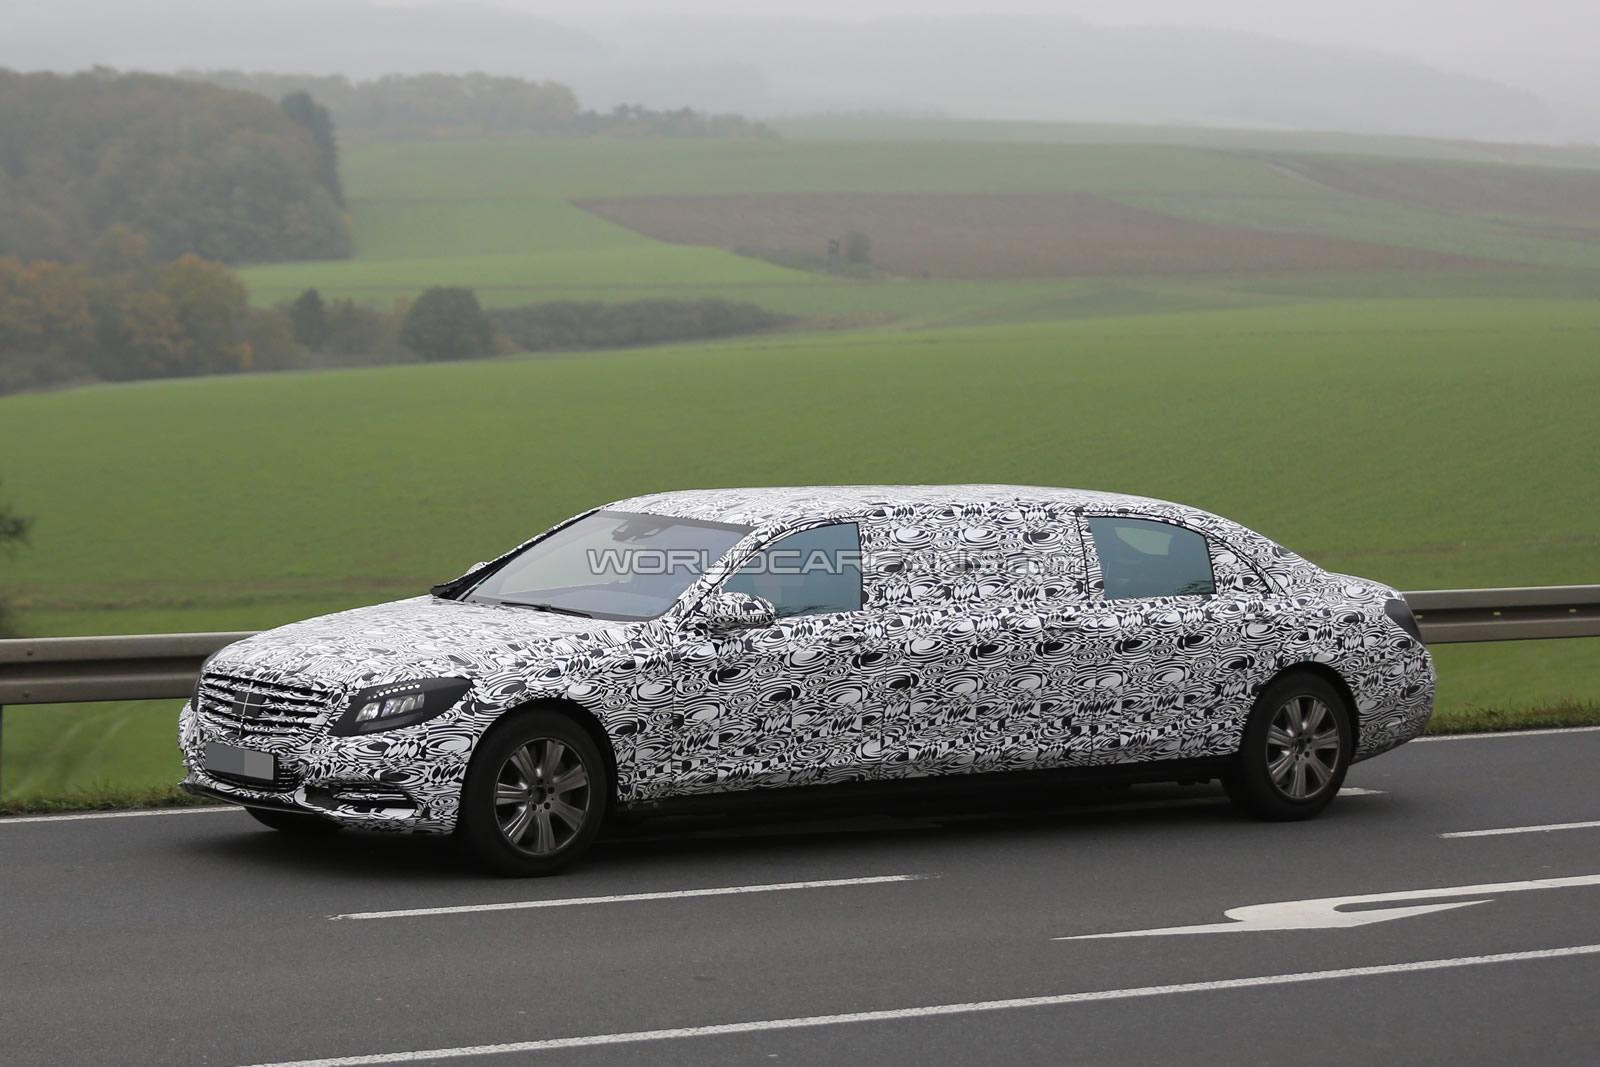 Mercedes-Maybach S-Class Pullman will be shown at the Motor Show in Geneva in 2015